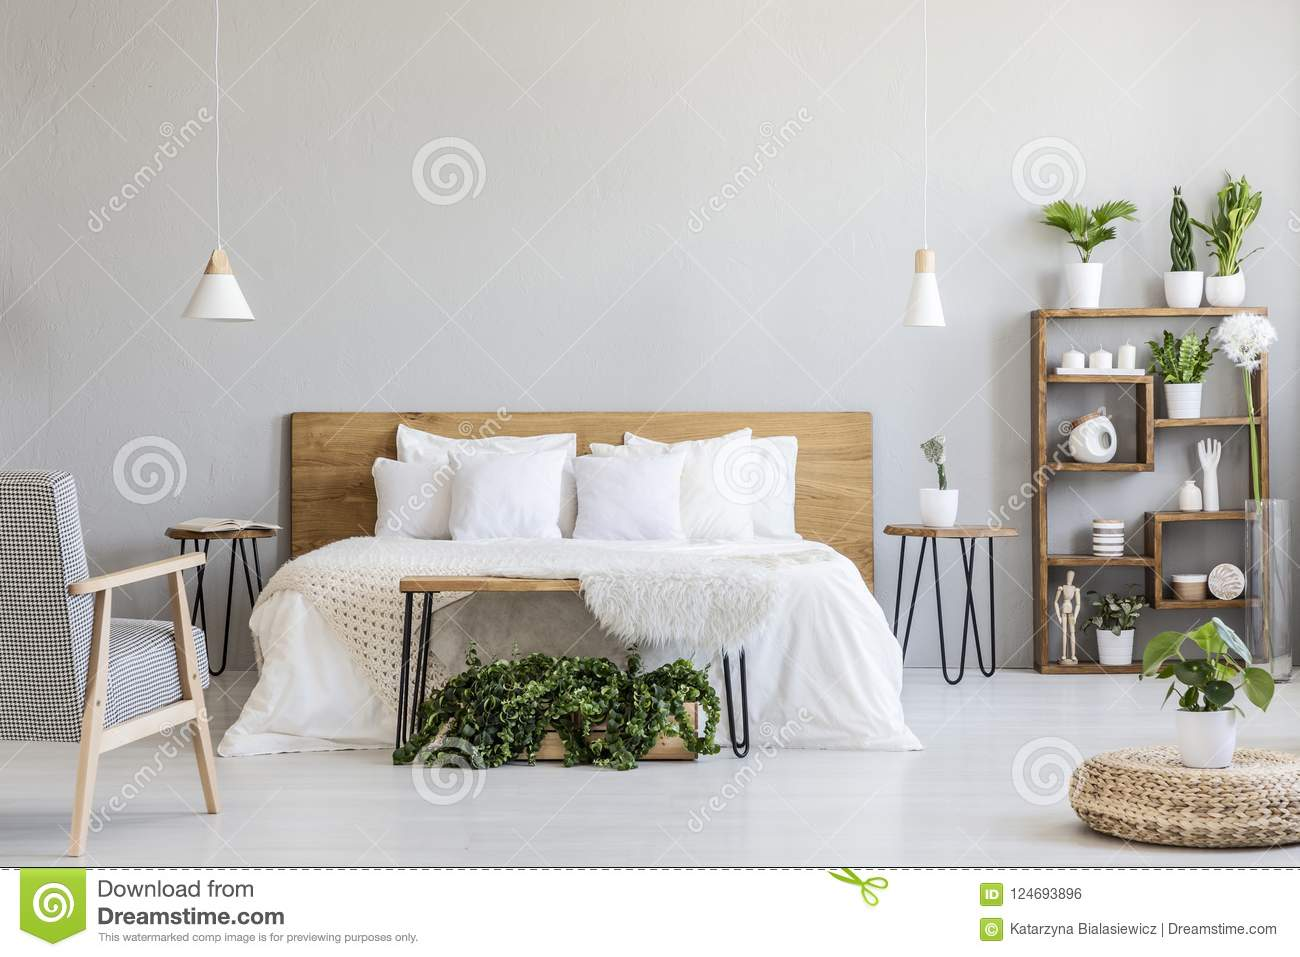 Patterned Armchair Near White Wooden Bed In Grey Bedroom